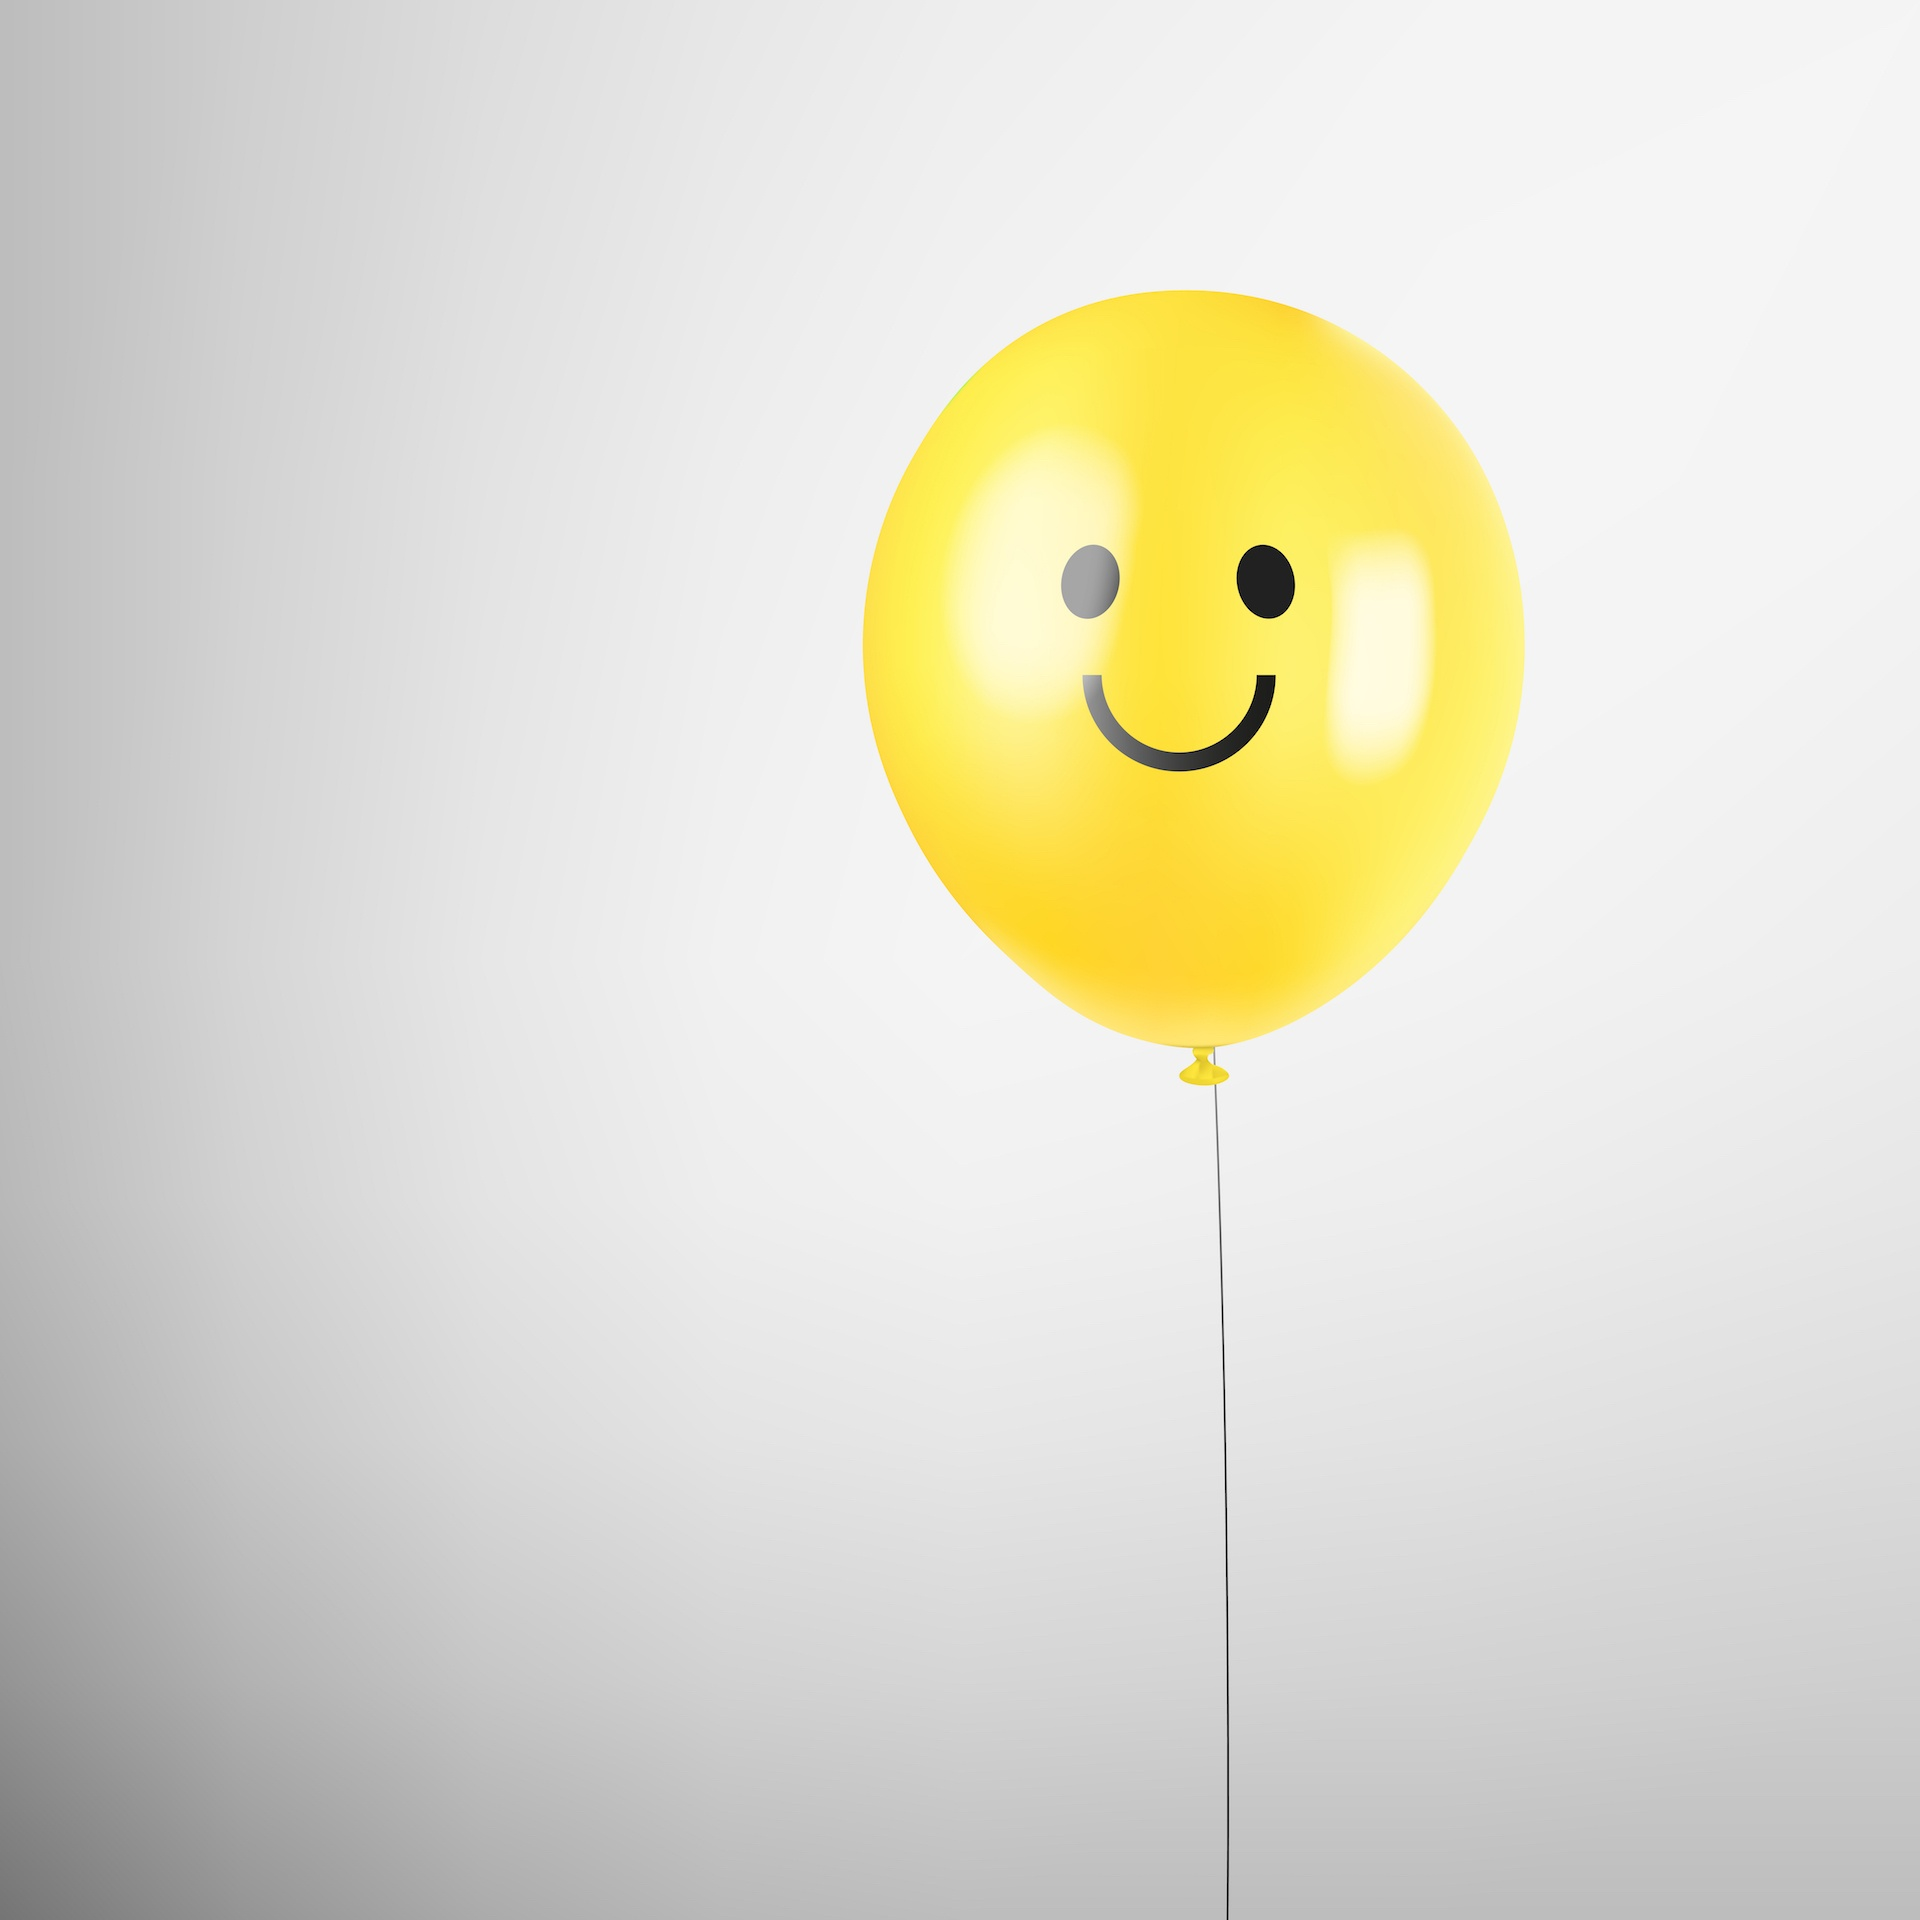 5 Keys to Being Happy and Ridiculously Successful